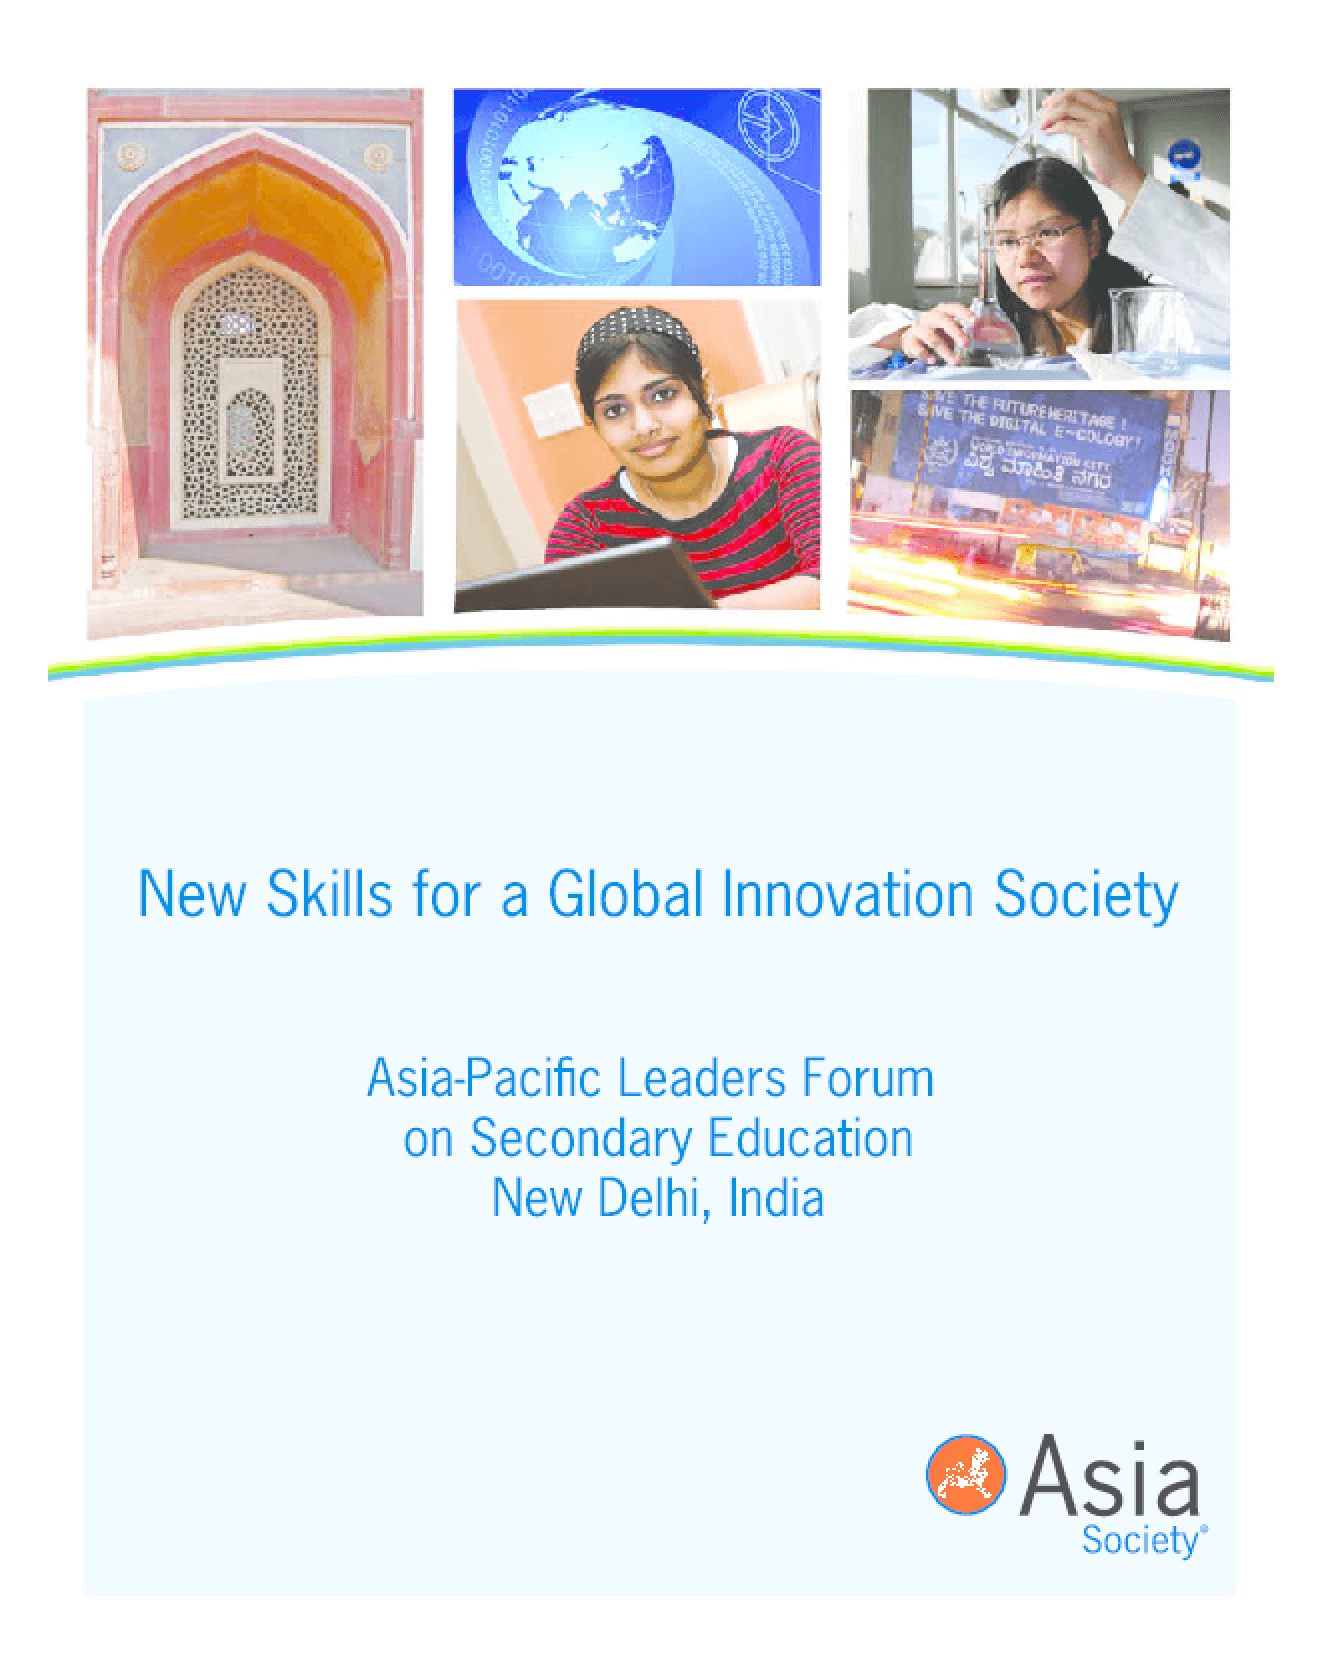 New Skills for a Global Innovation Society: Asia-Pacific Leaders Forum on Secondary Education